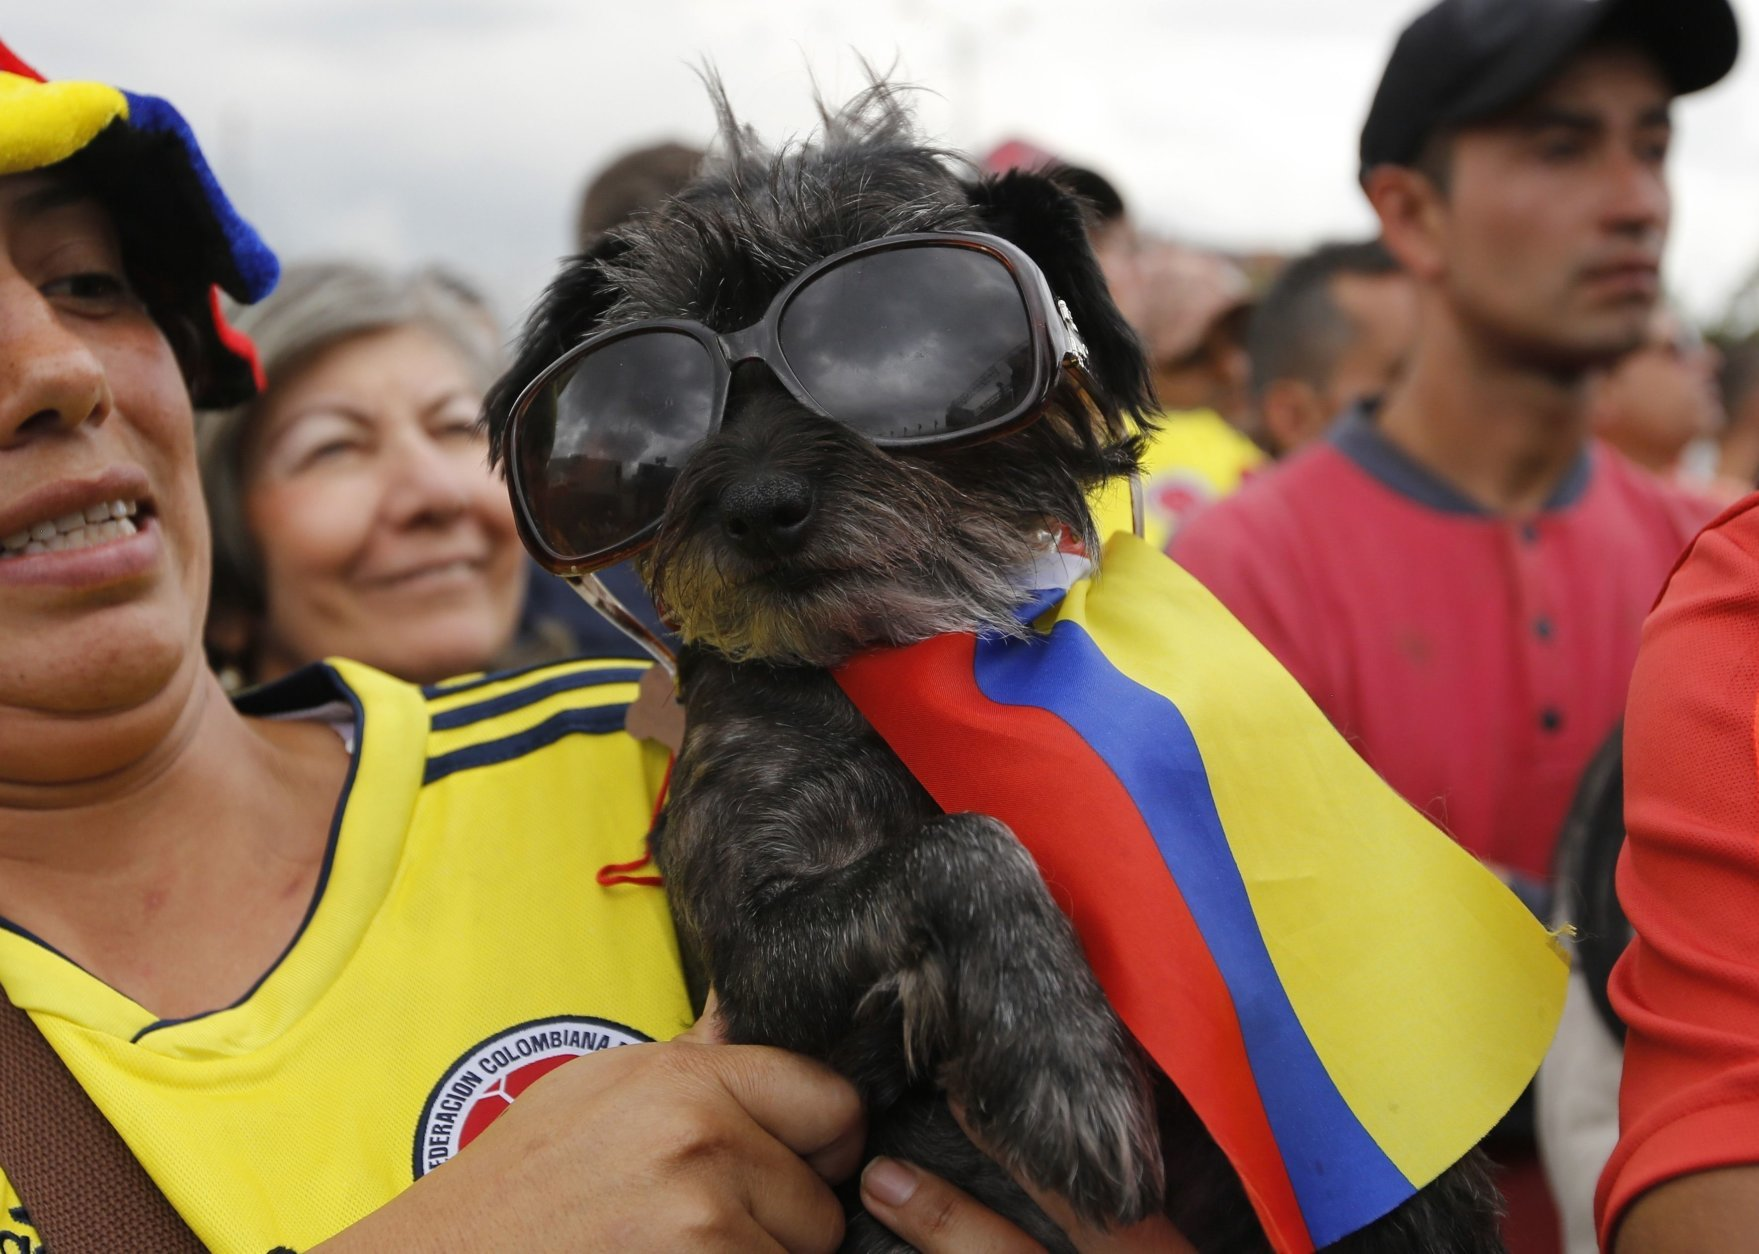 A Colombia soccer fan holds a flag-wearing dog in sunglasses during a live telecast of the Russia World Cup match between Colombia and England in Bogota, Colombia, Tuesday, July 3, 2018. (AP Photo/Fernando Vergara)